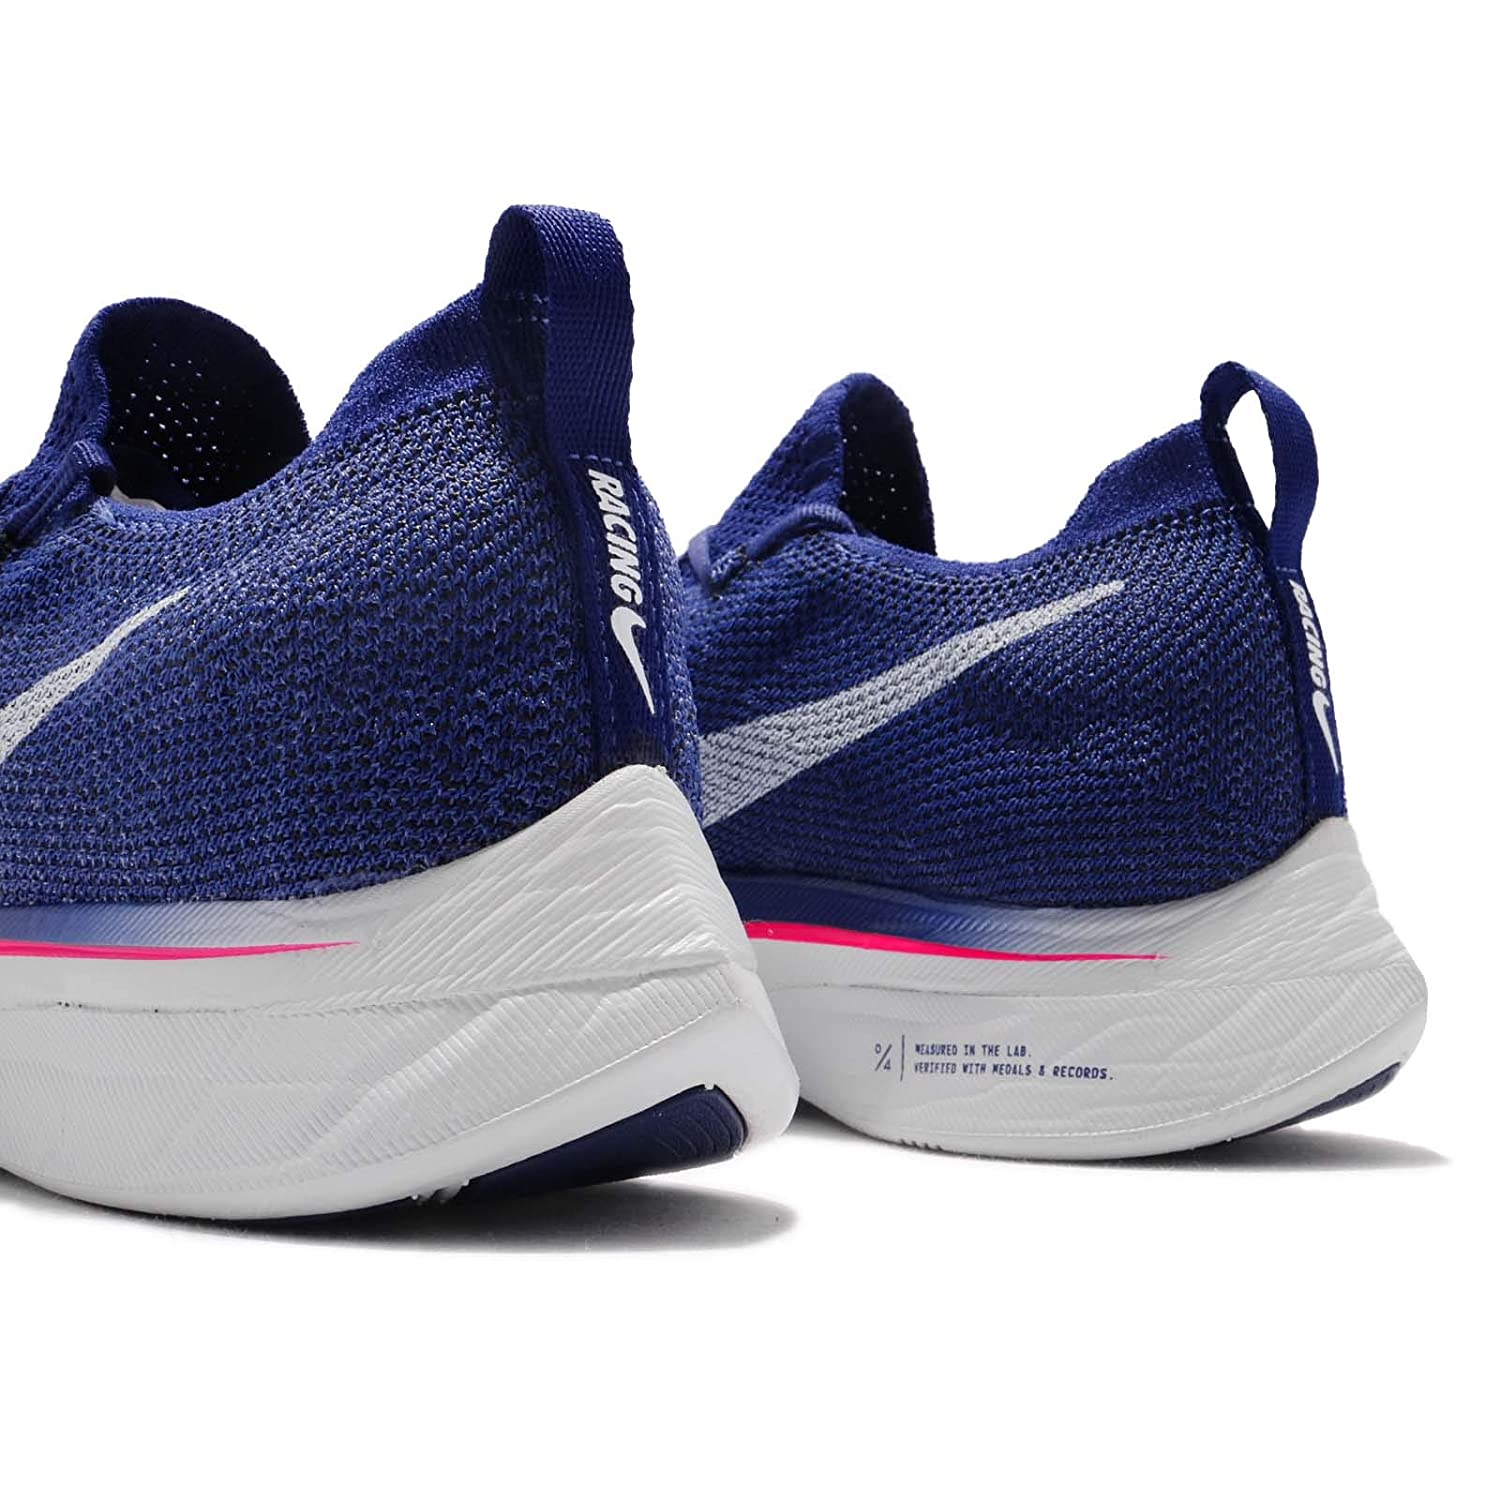 best authentic c8195 ad1f9 Athletic Shoes Nike Vaporfly 4% Flyknit Deep Royal Blue Ghost Aqua Men Running  Shoes AJ3857-400 Shoes